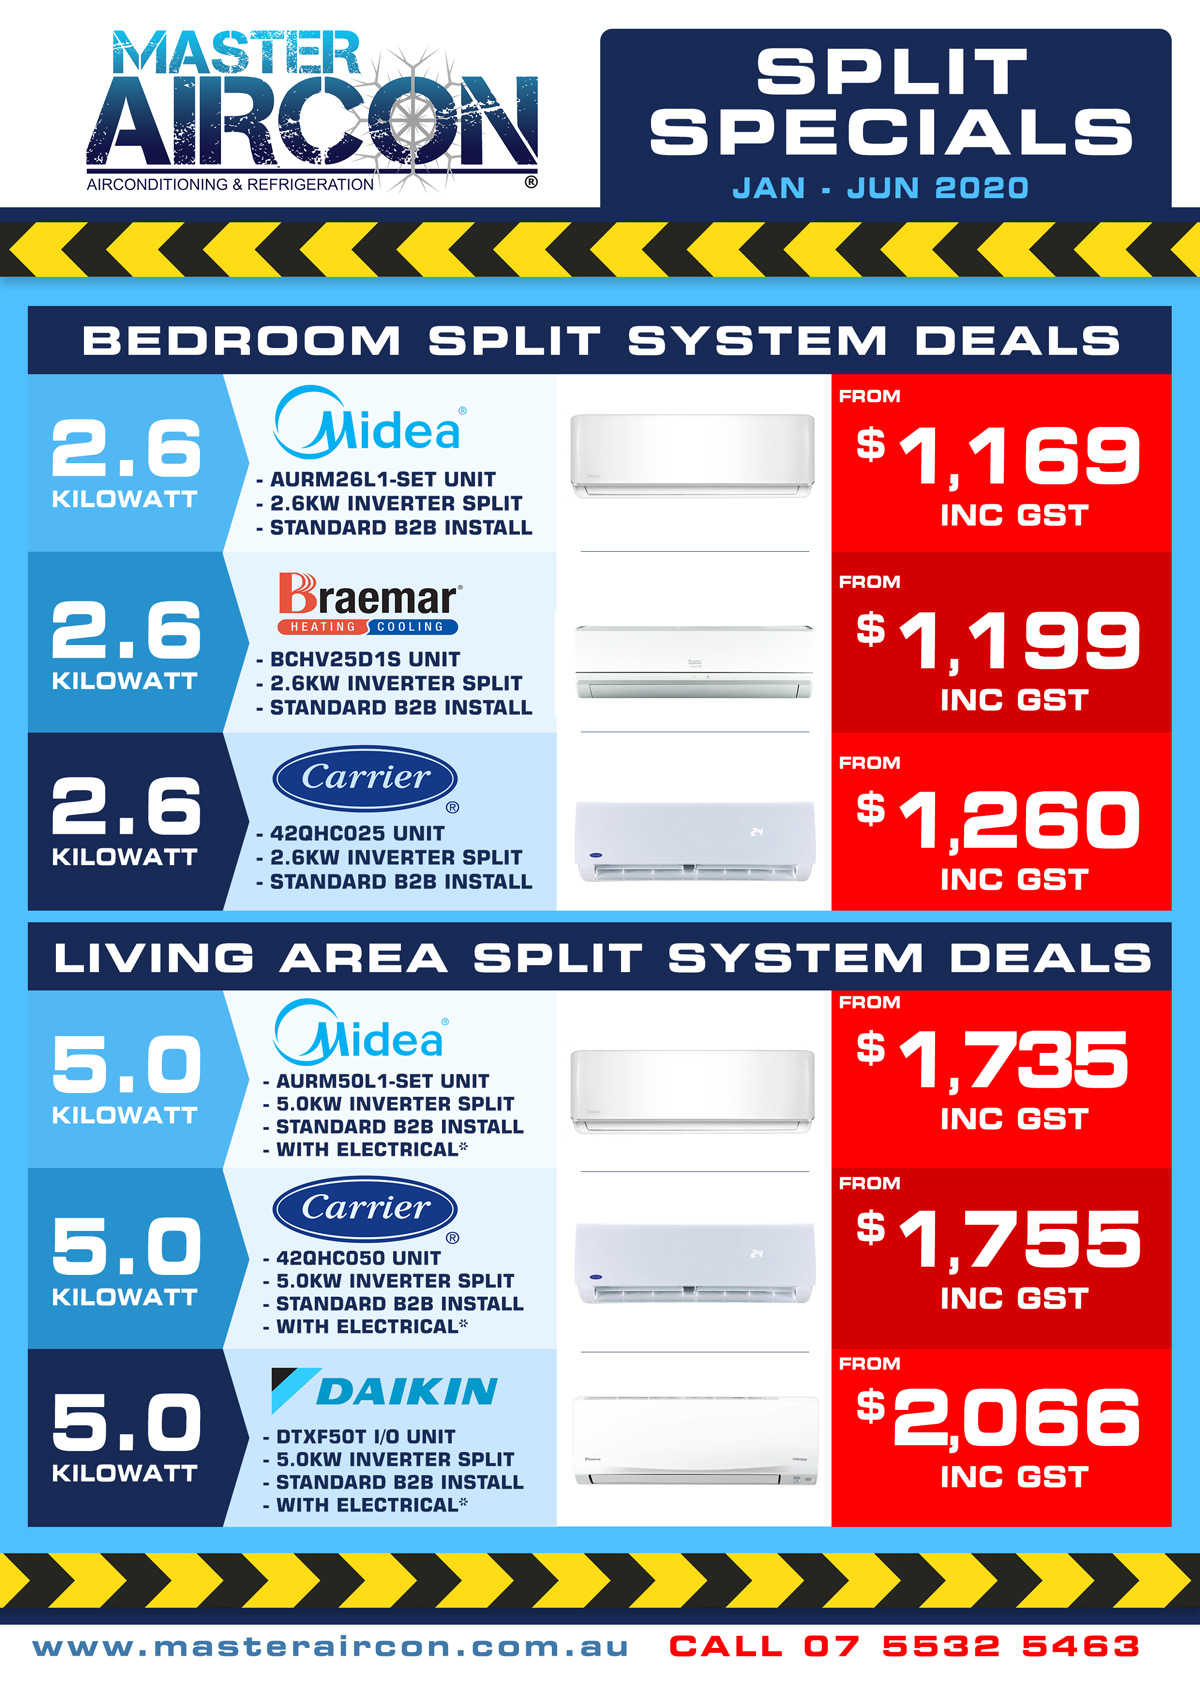 https://www.masteraircon.com.au/wp-content/uploads/2020/02/MAC_2020_specials_split_v1_1200_jan.jpg